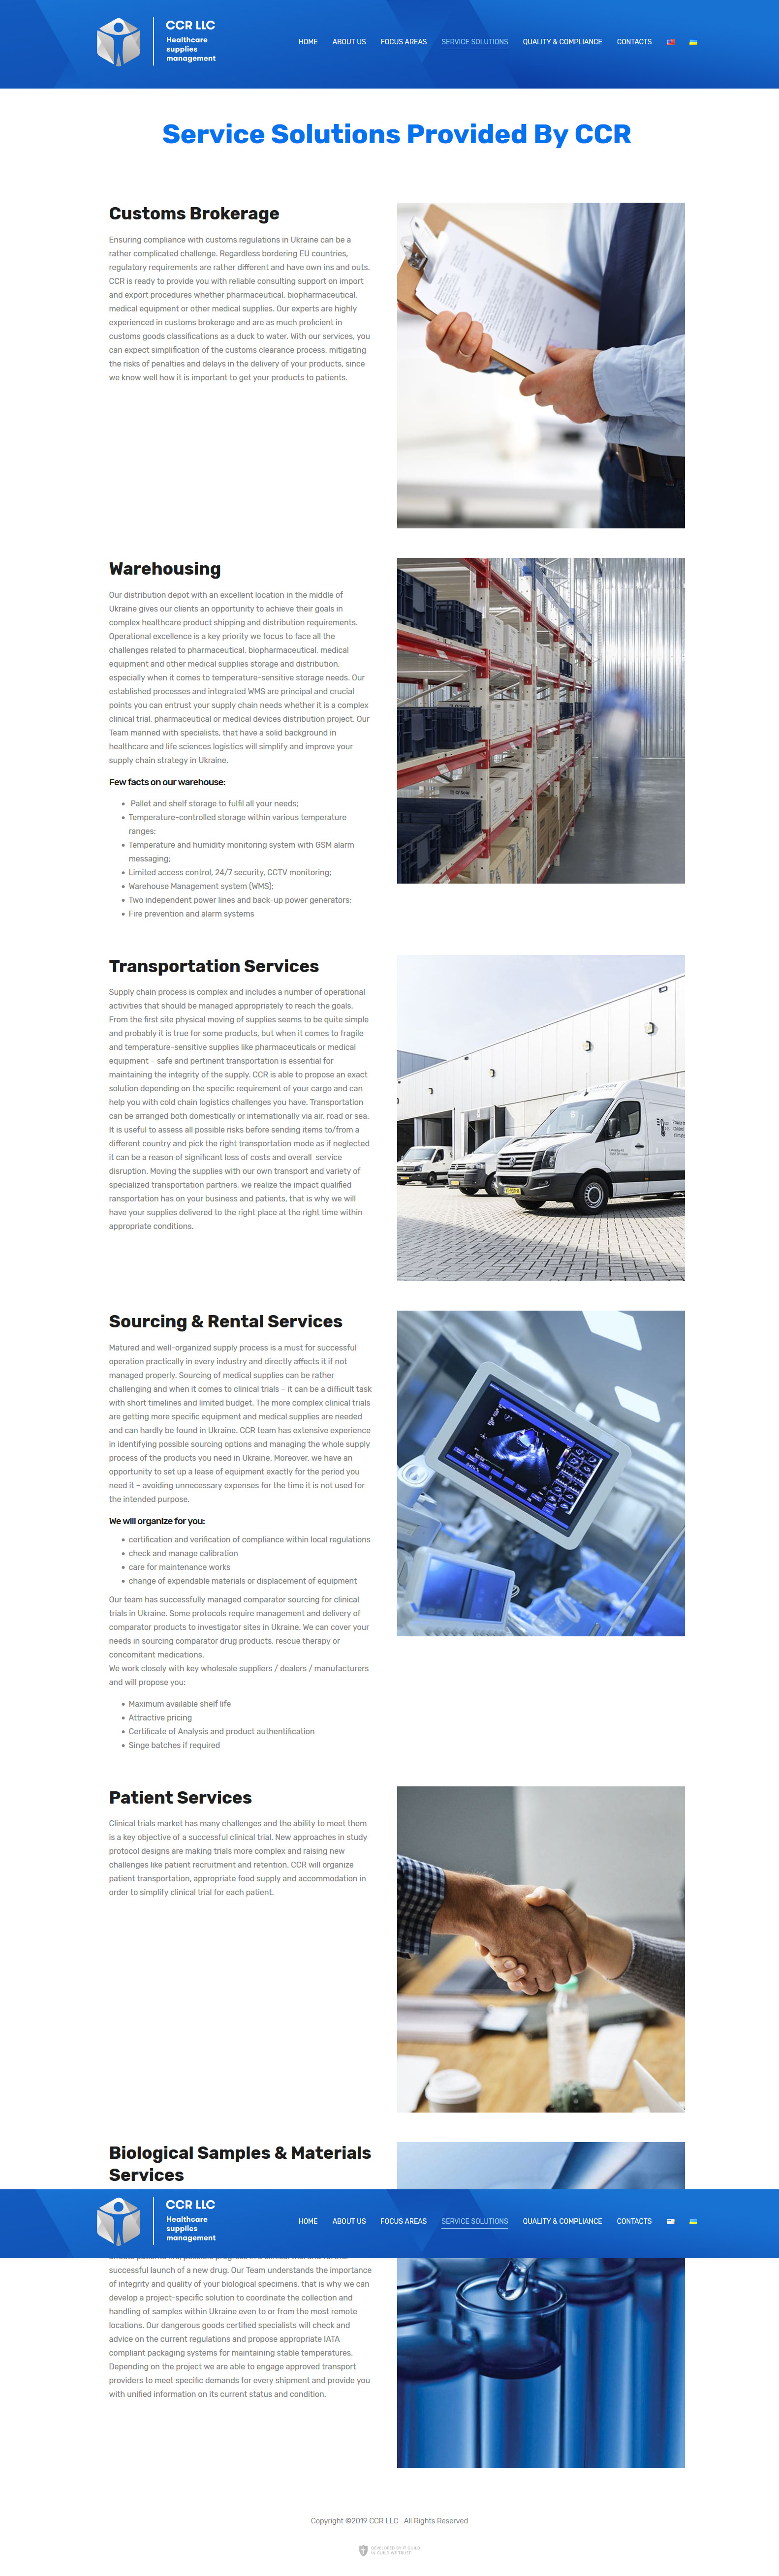 SCCR-service-solutions